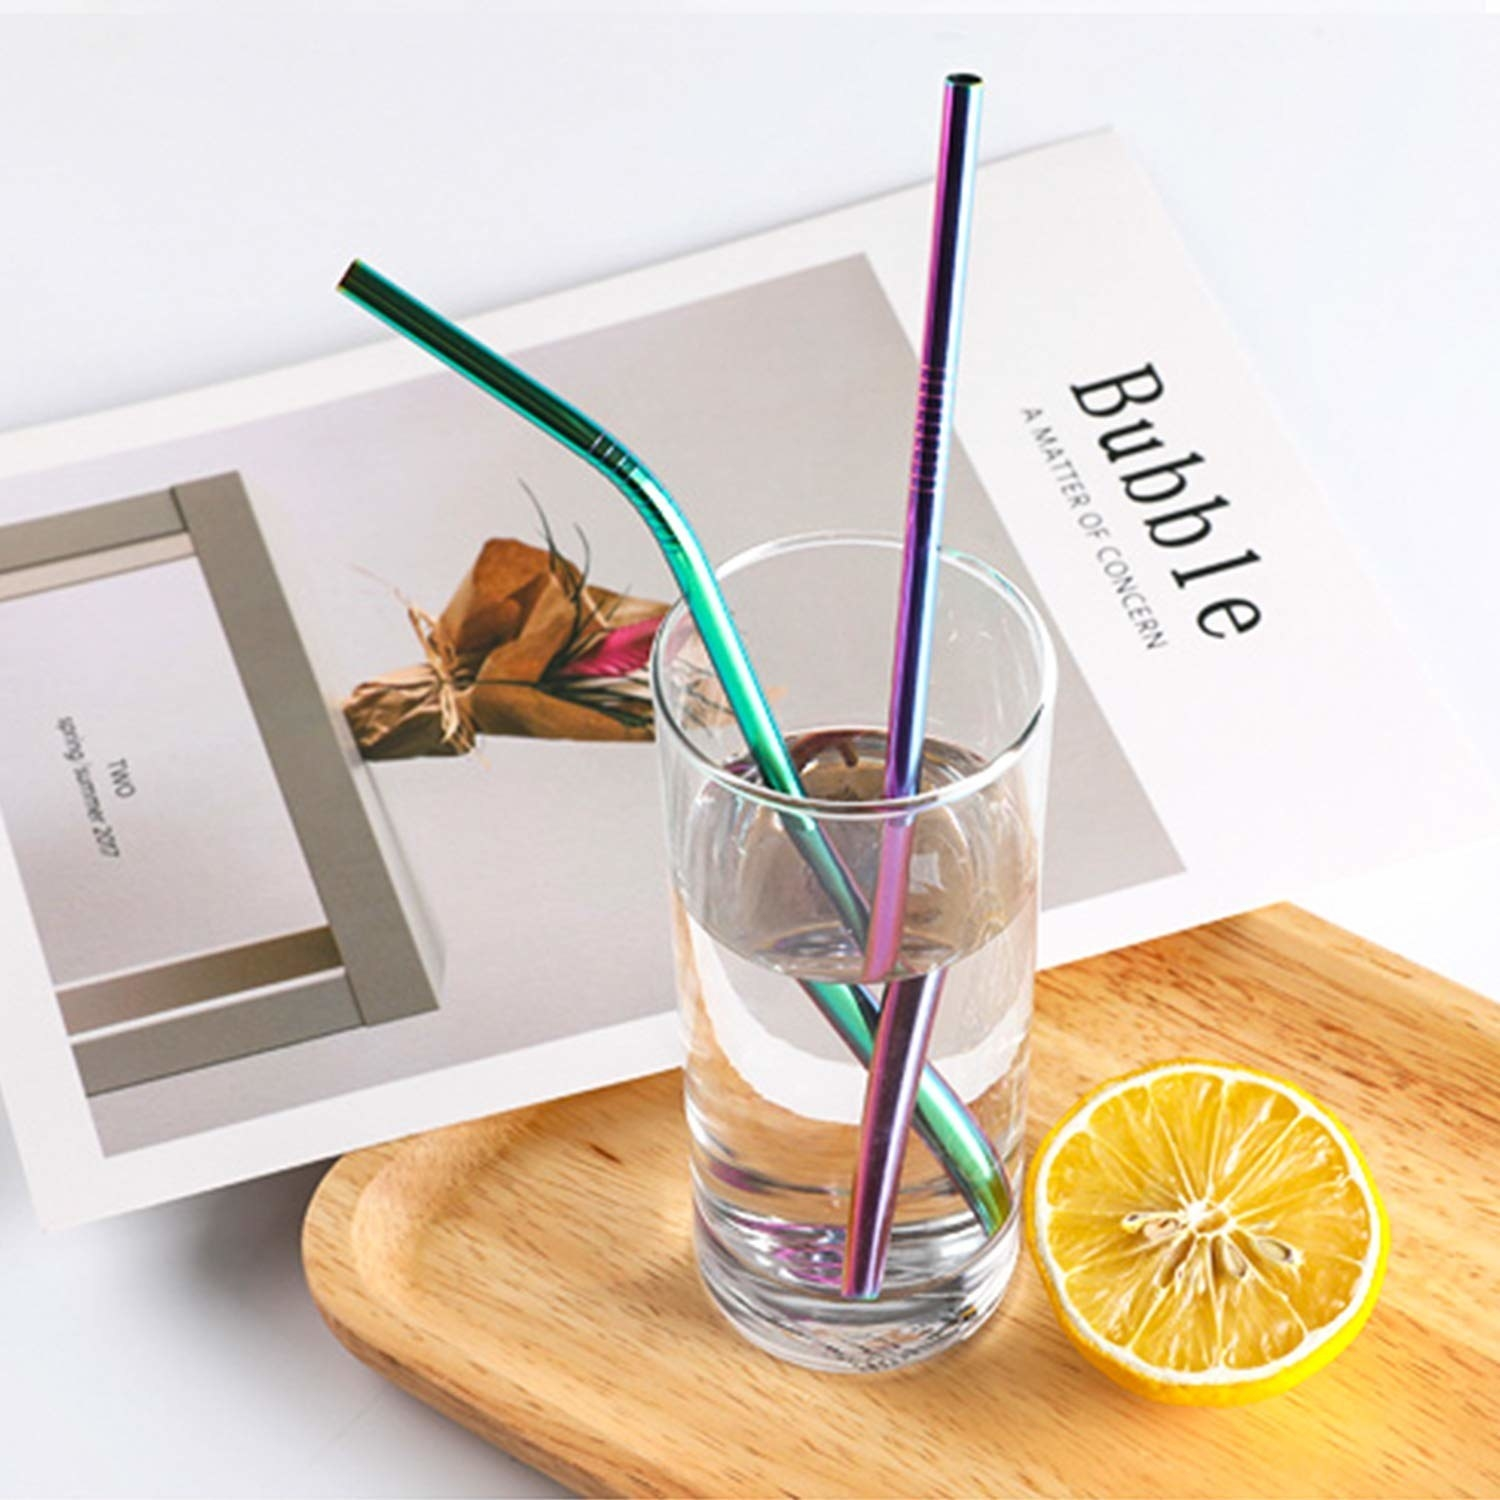 the rainbow metal straws in a glass of water